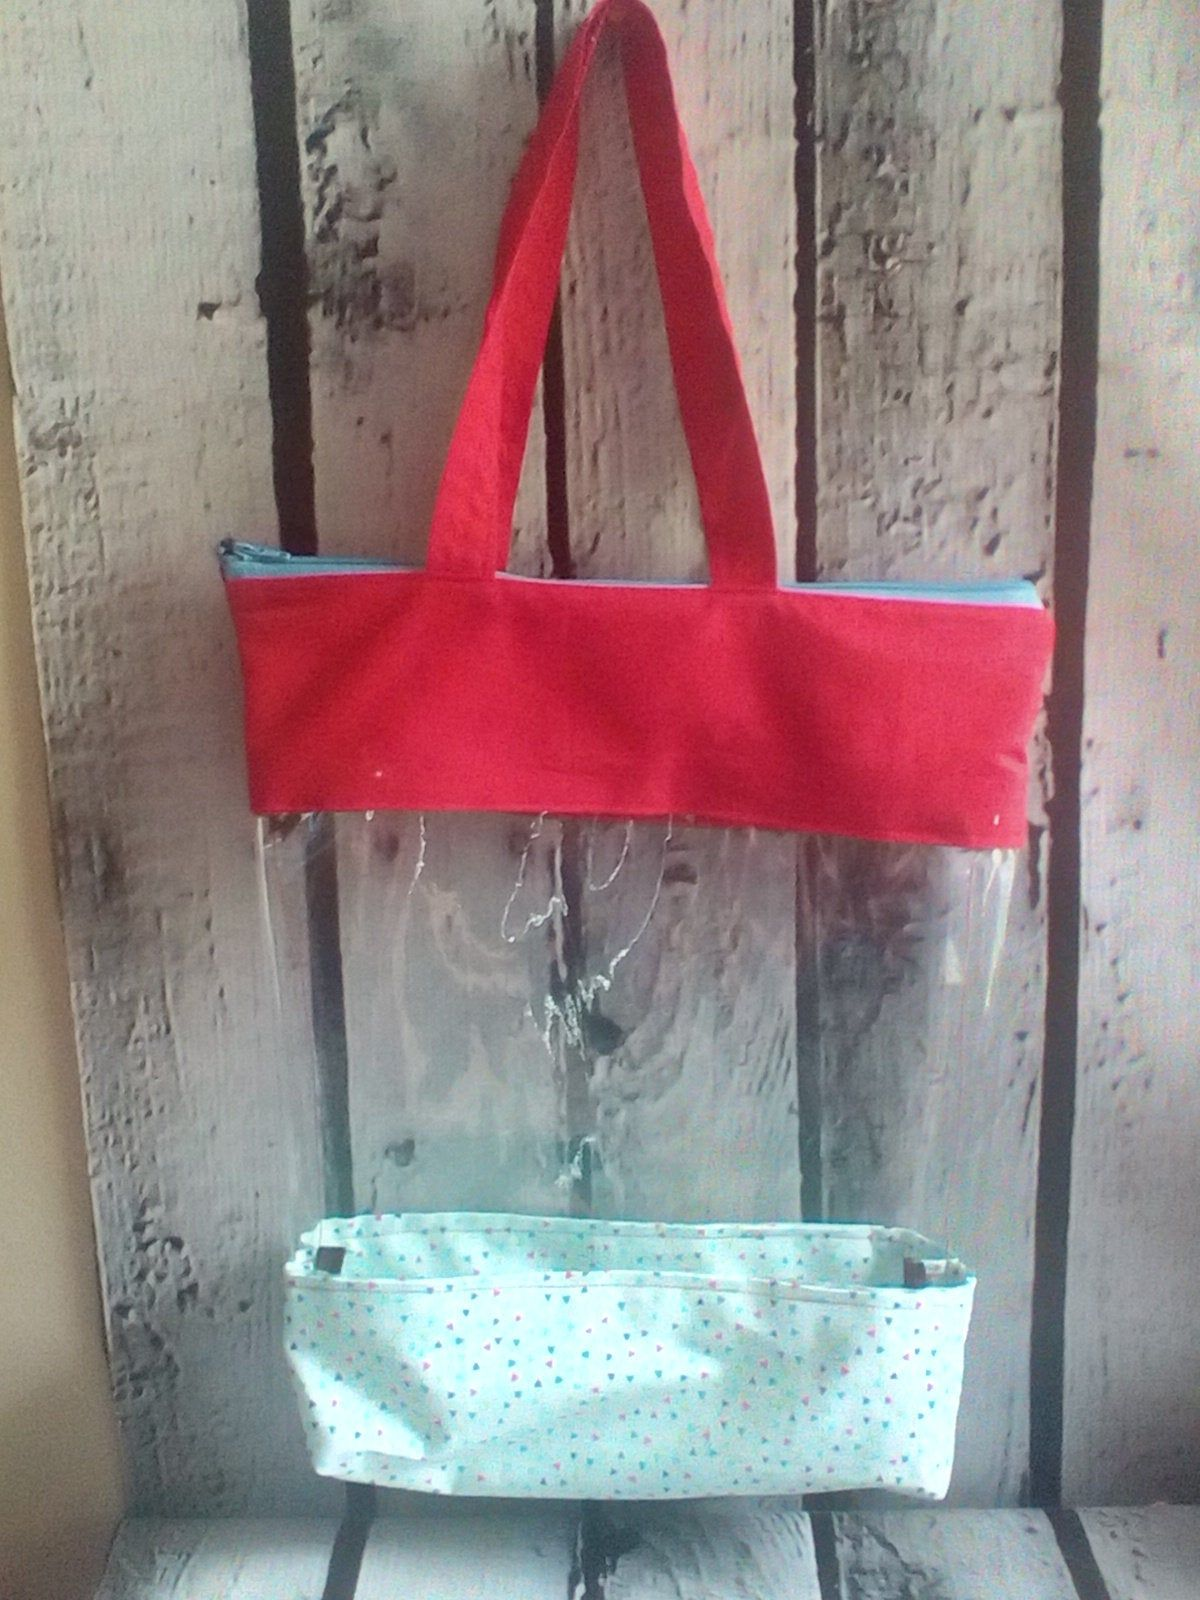 Large Vinyl Toy Bag Beach Bag Pool Tote Bag By Faithhands On Etsy Pool Bags Toy Bags Beach Bag